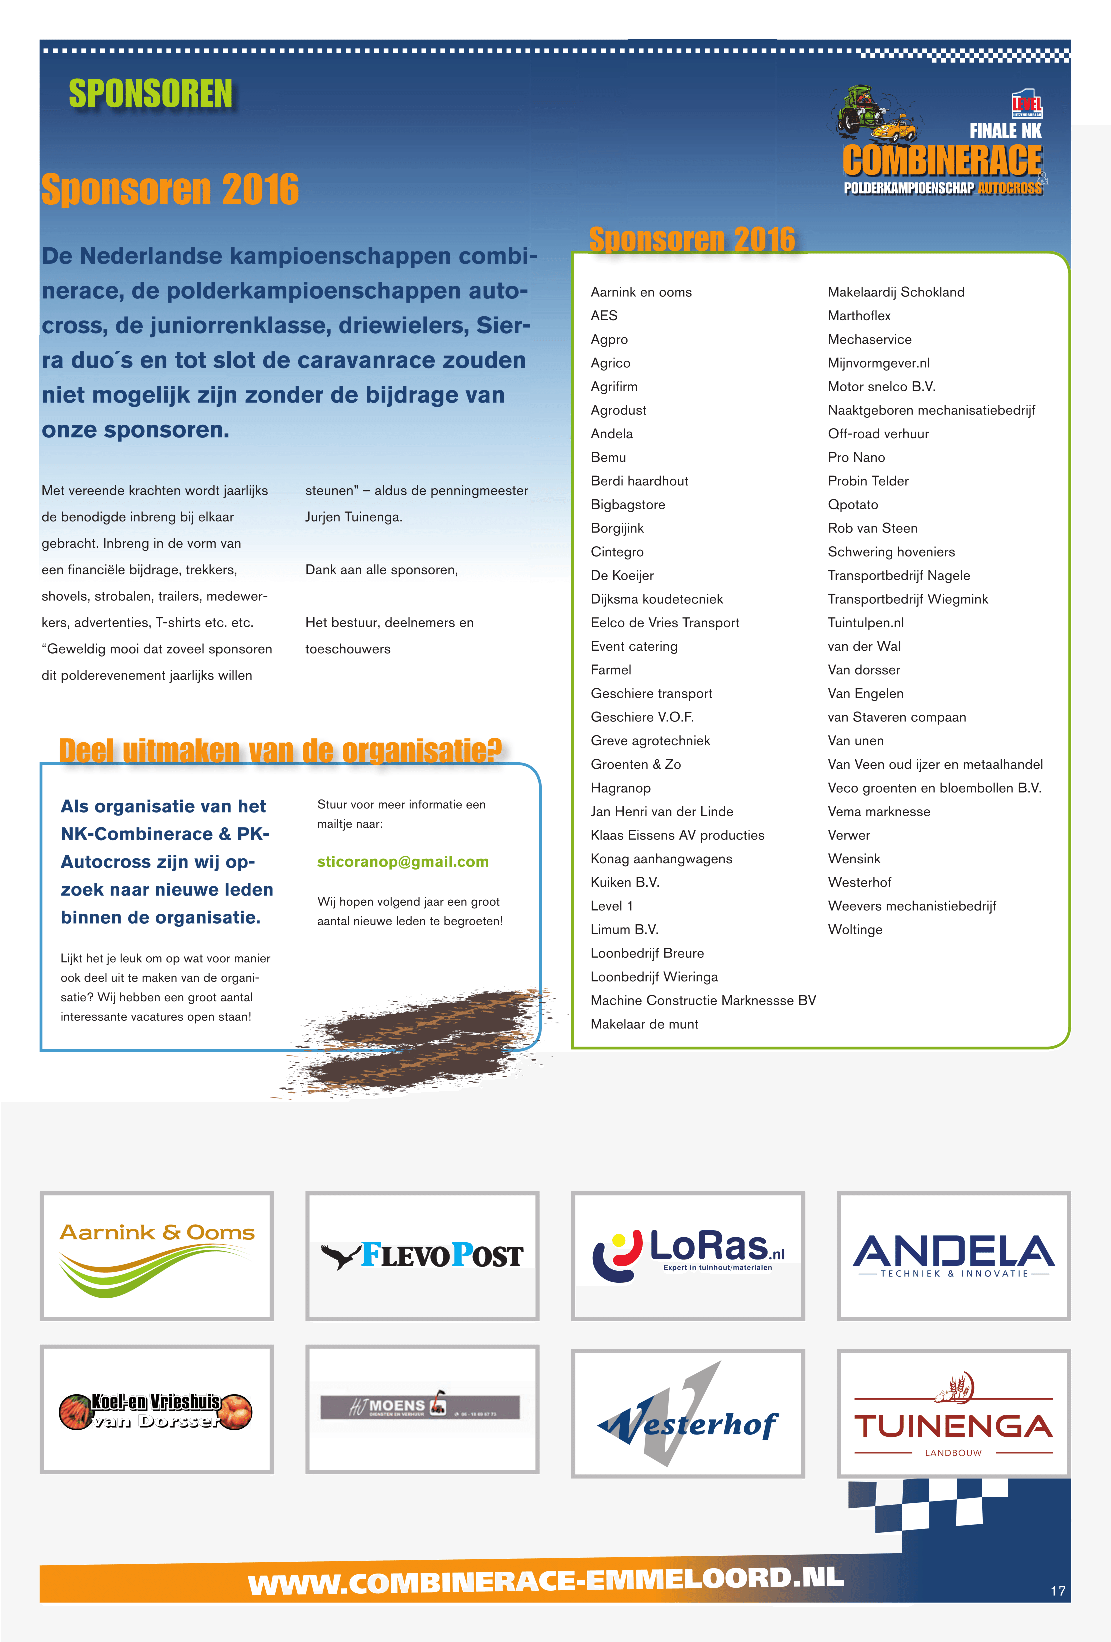 Emmeloord 2016 - pagina 17